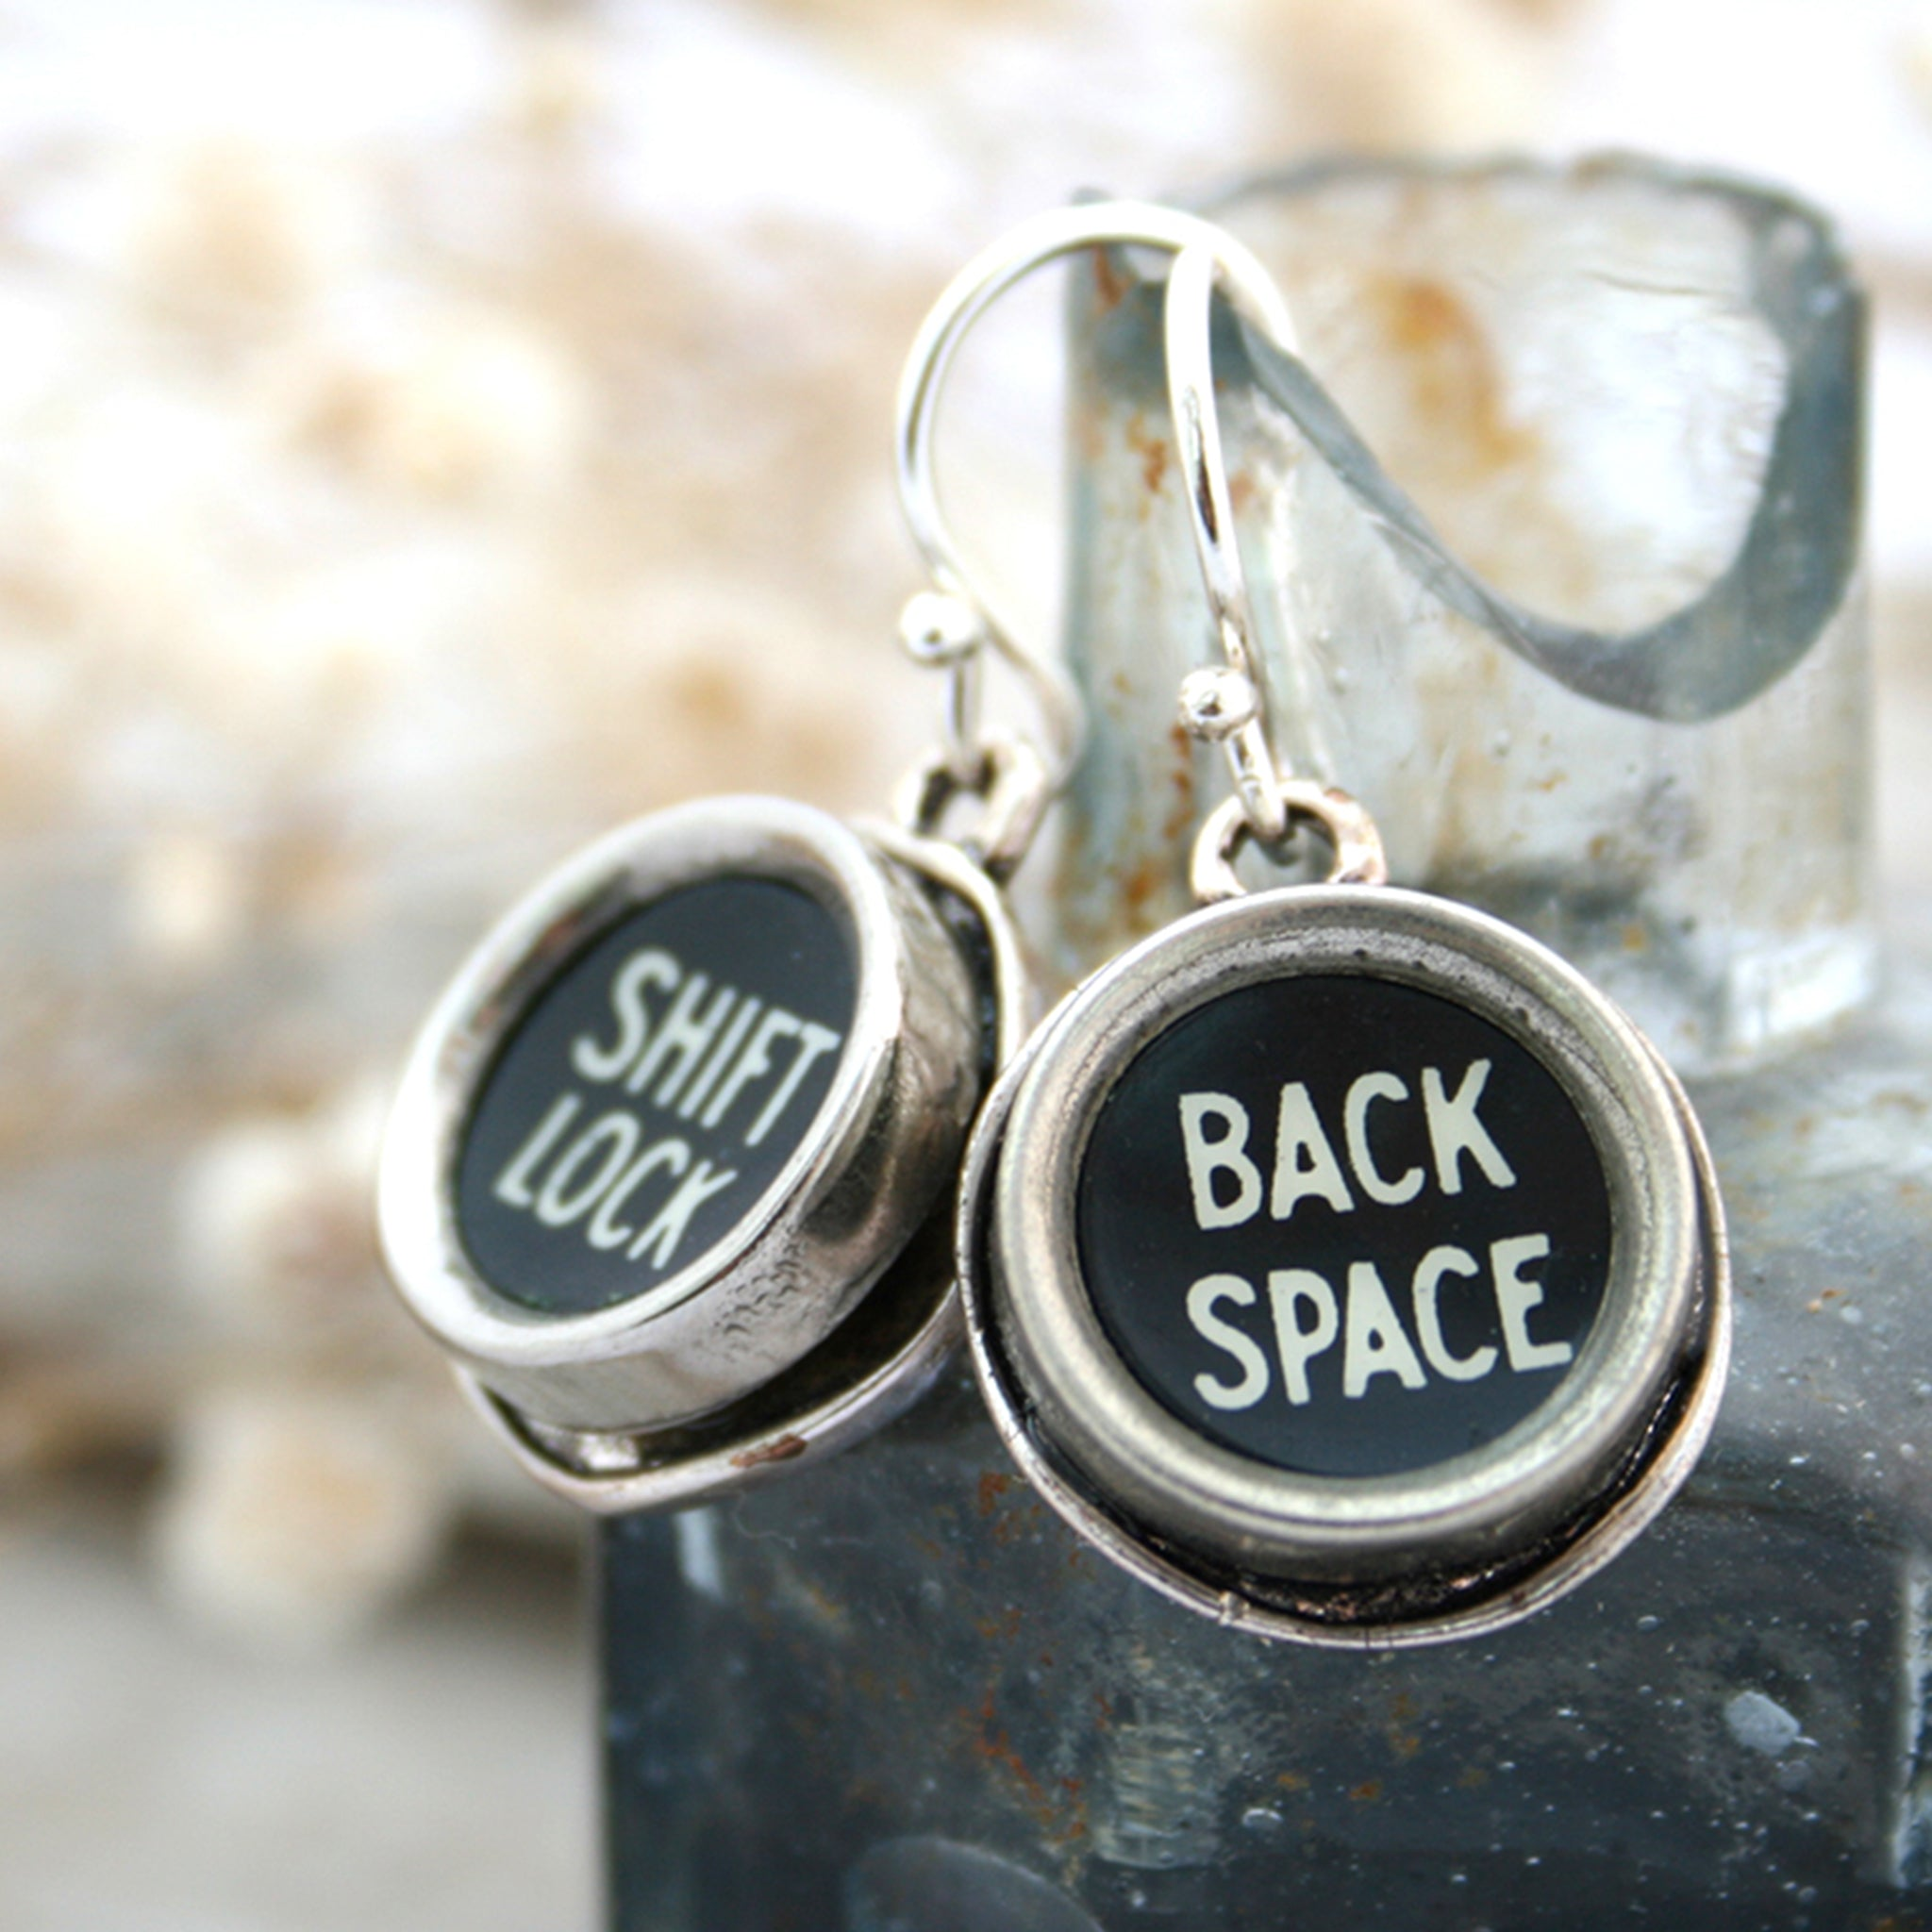 Typewriter keys Shift Lock and Back space earrings hanging from an inkwell